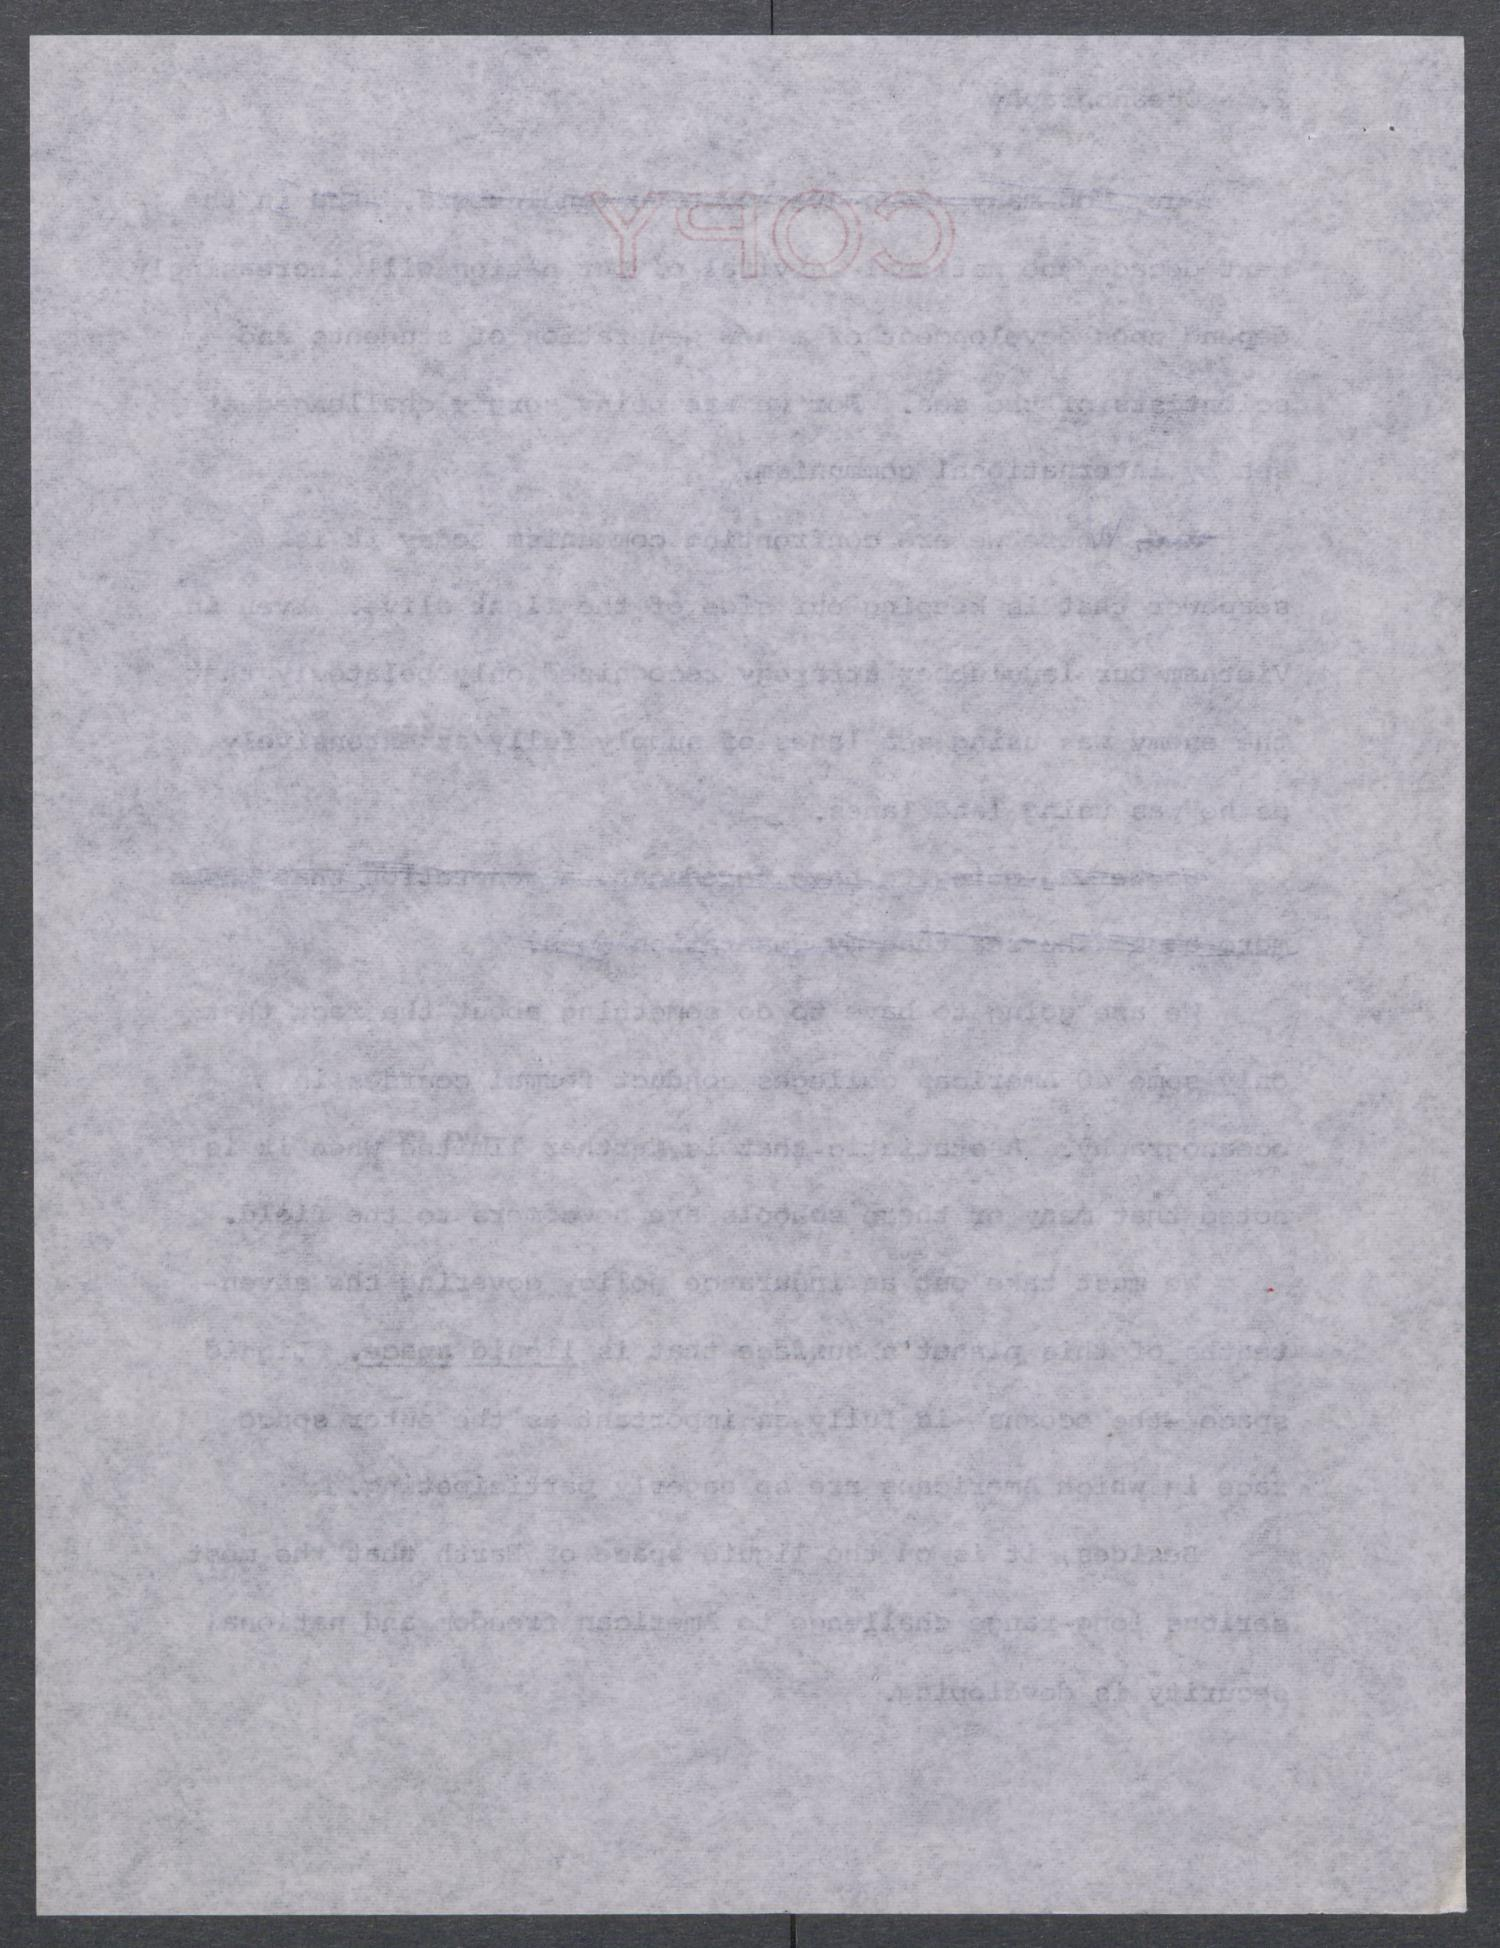 [John Tower Speech on Oceanography given to the Southwest Science Exposition, El Paso, Texas, October 13, 1965]                                                                                                      [Sequence #]: 4 of 18